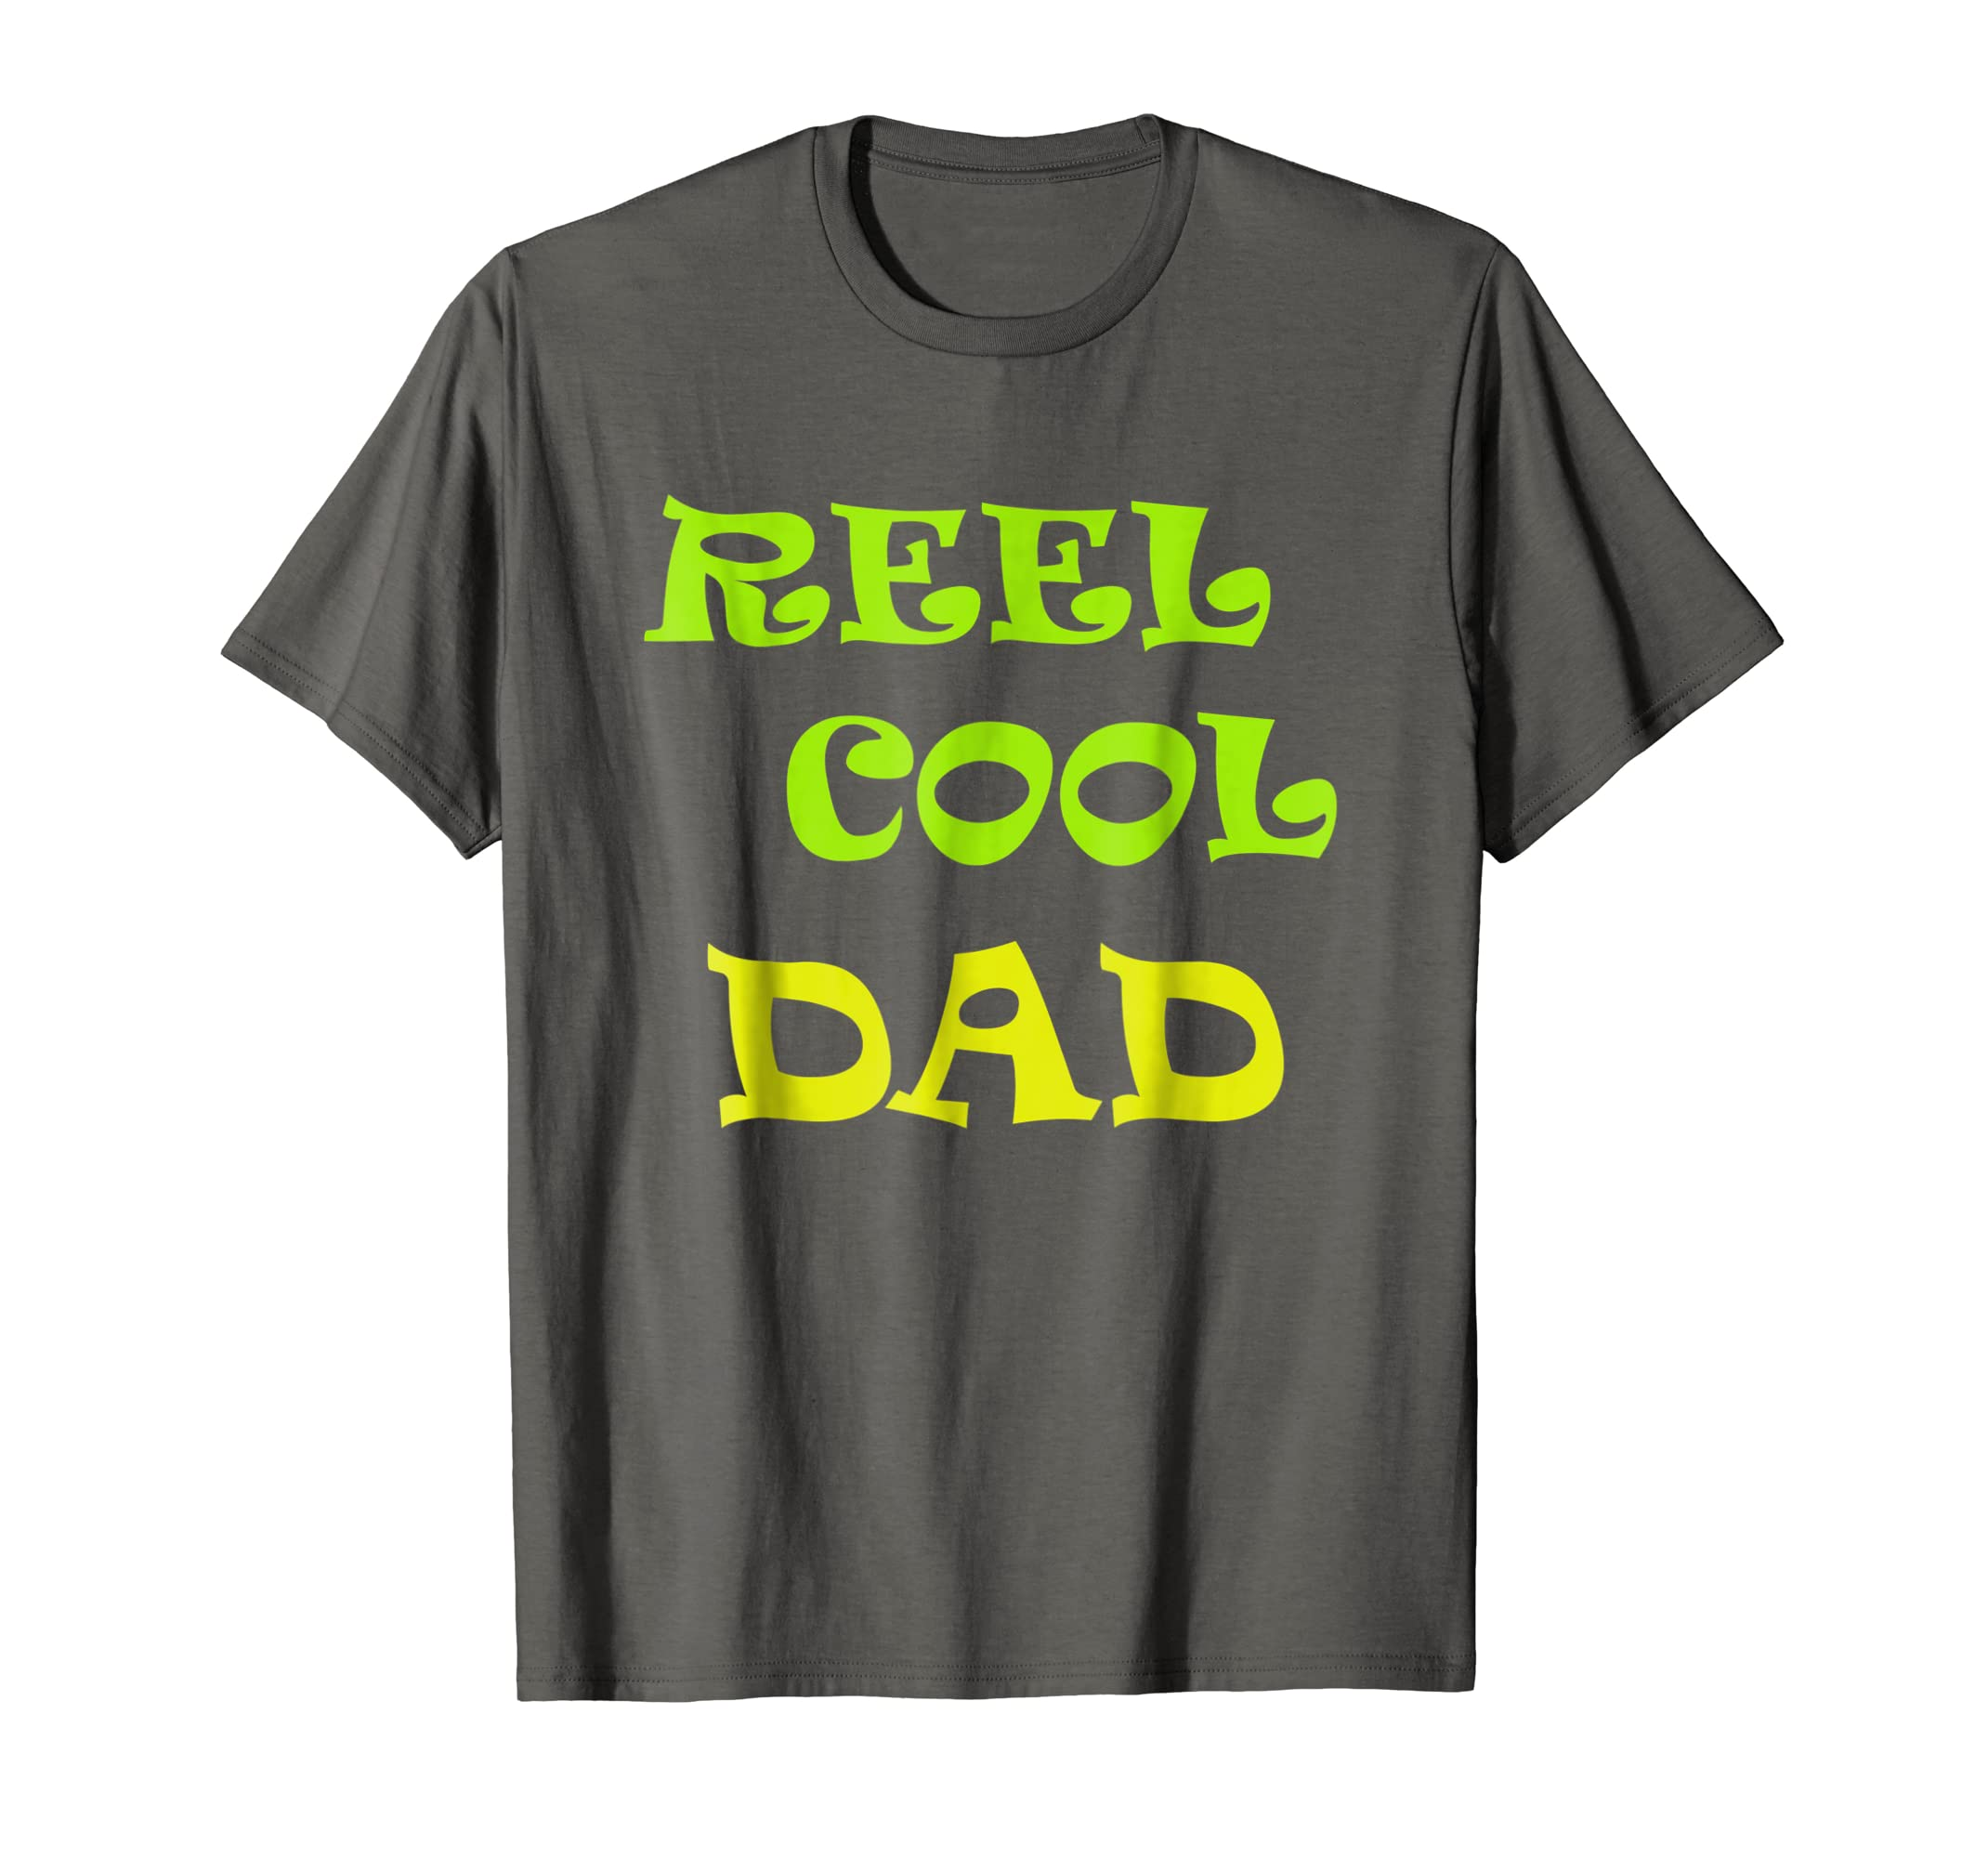 Amazon Reel Cool Dad Shirts Ideas For Fathers Day Birthday Gift Clothing